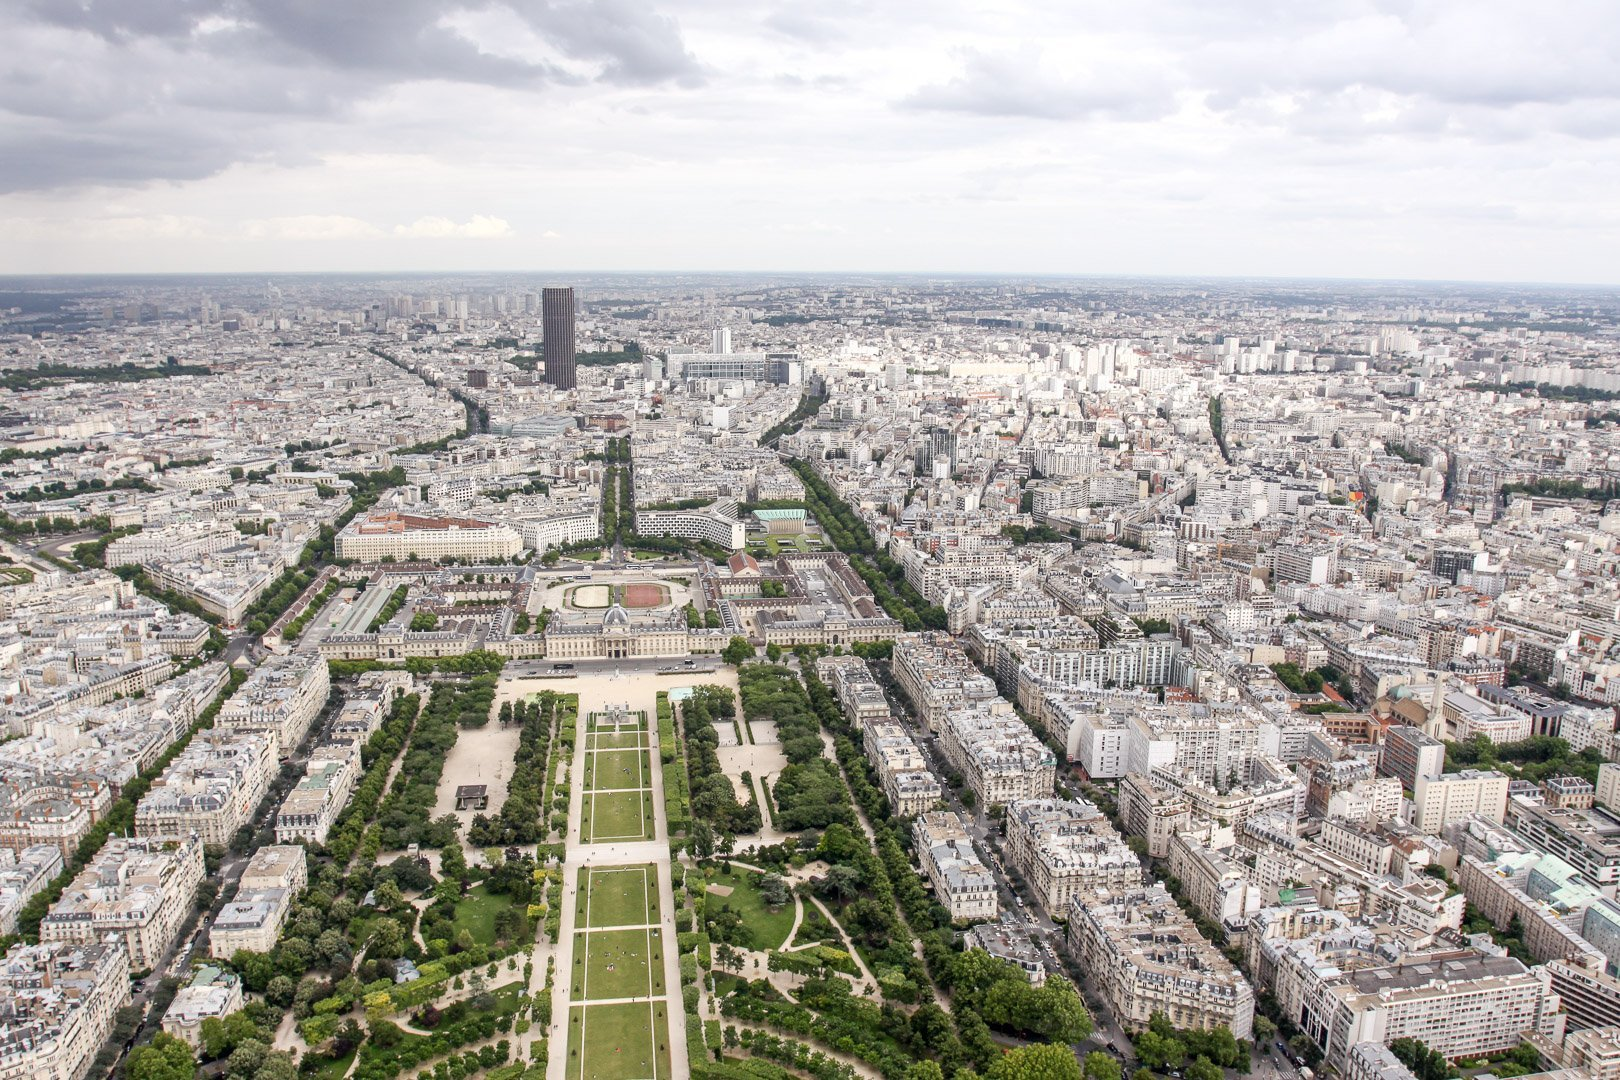 View of the Champ de Mars from inside the Eiffel Tower